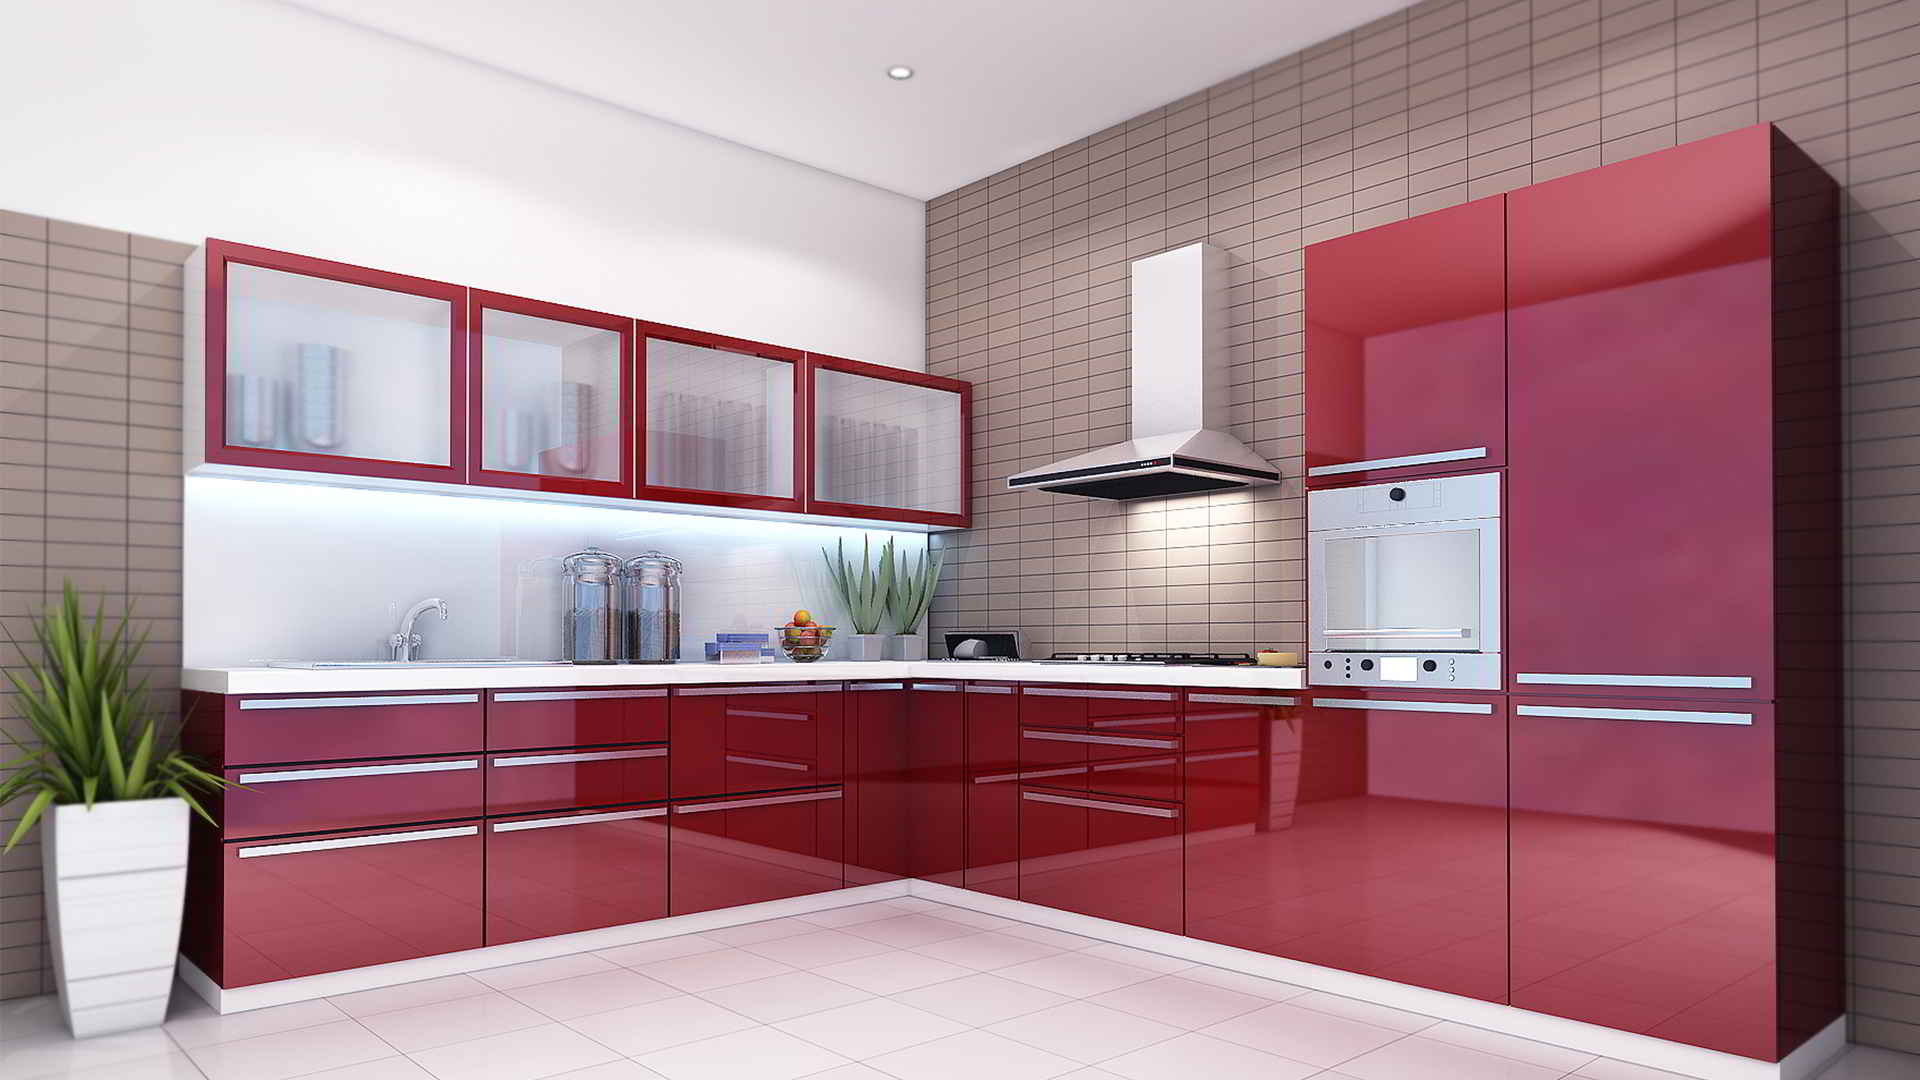 25 latest design ideas of modular kitchen pictures for Red kitchen designs photo gallery